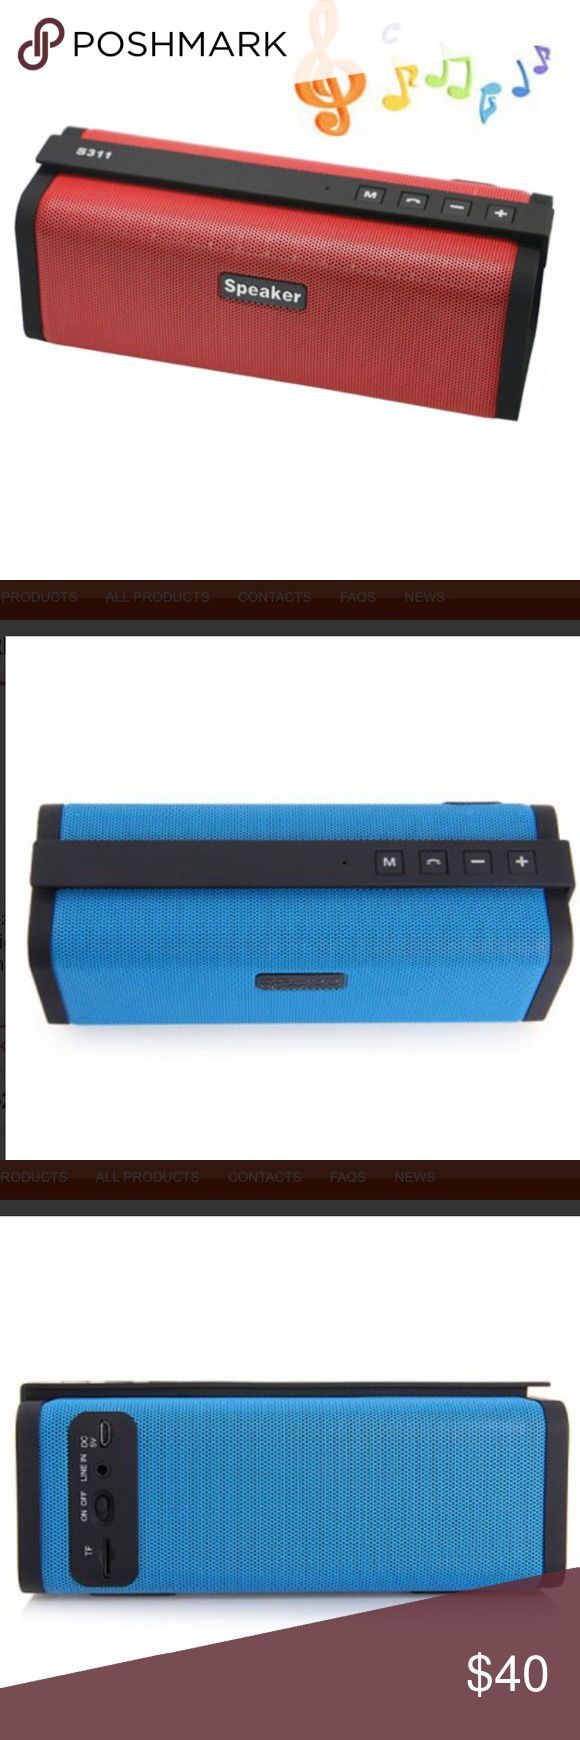 Bluedio BS-3 Bluetooth Wireless Stereo Speakers Bluedio Bluetooth Wireless Stereo Speakers Portable Outdoor Speakers,PC/IOS Accessories